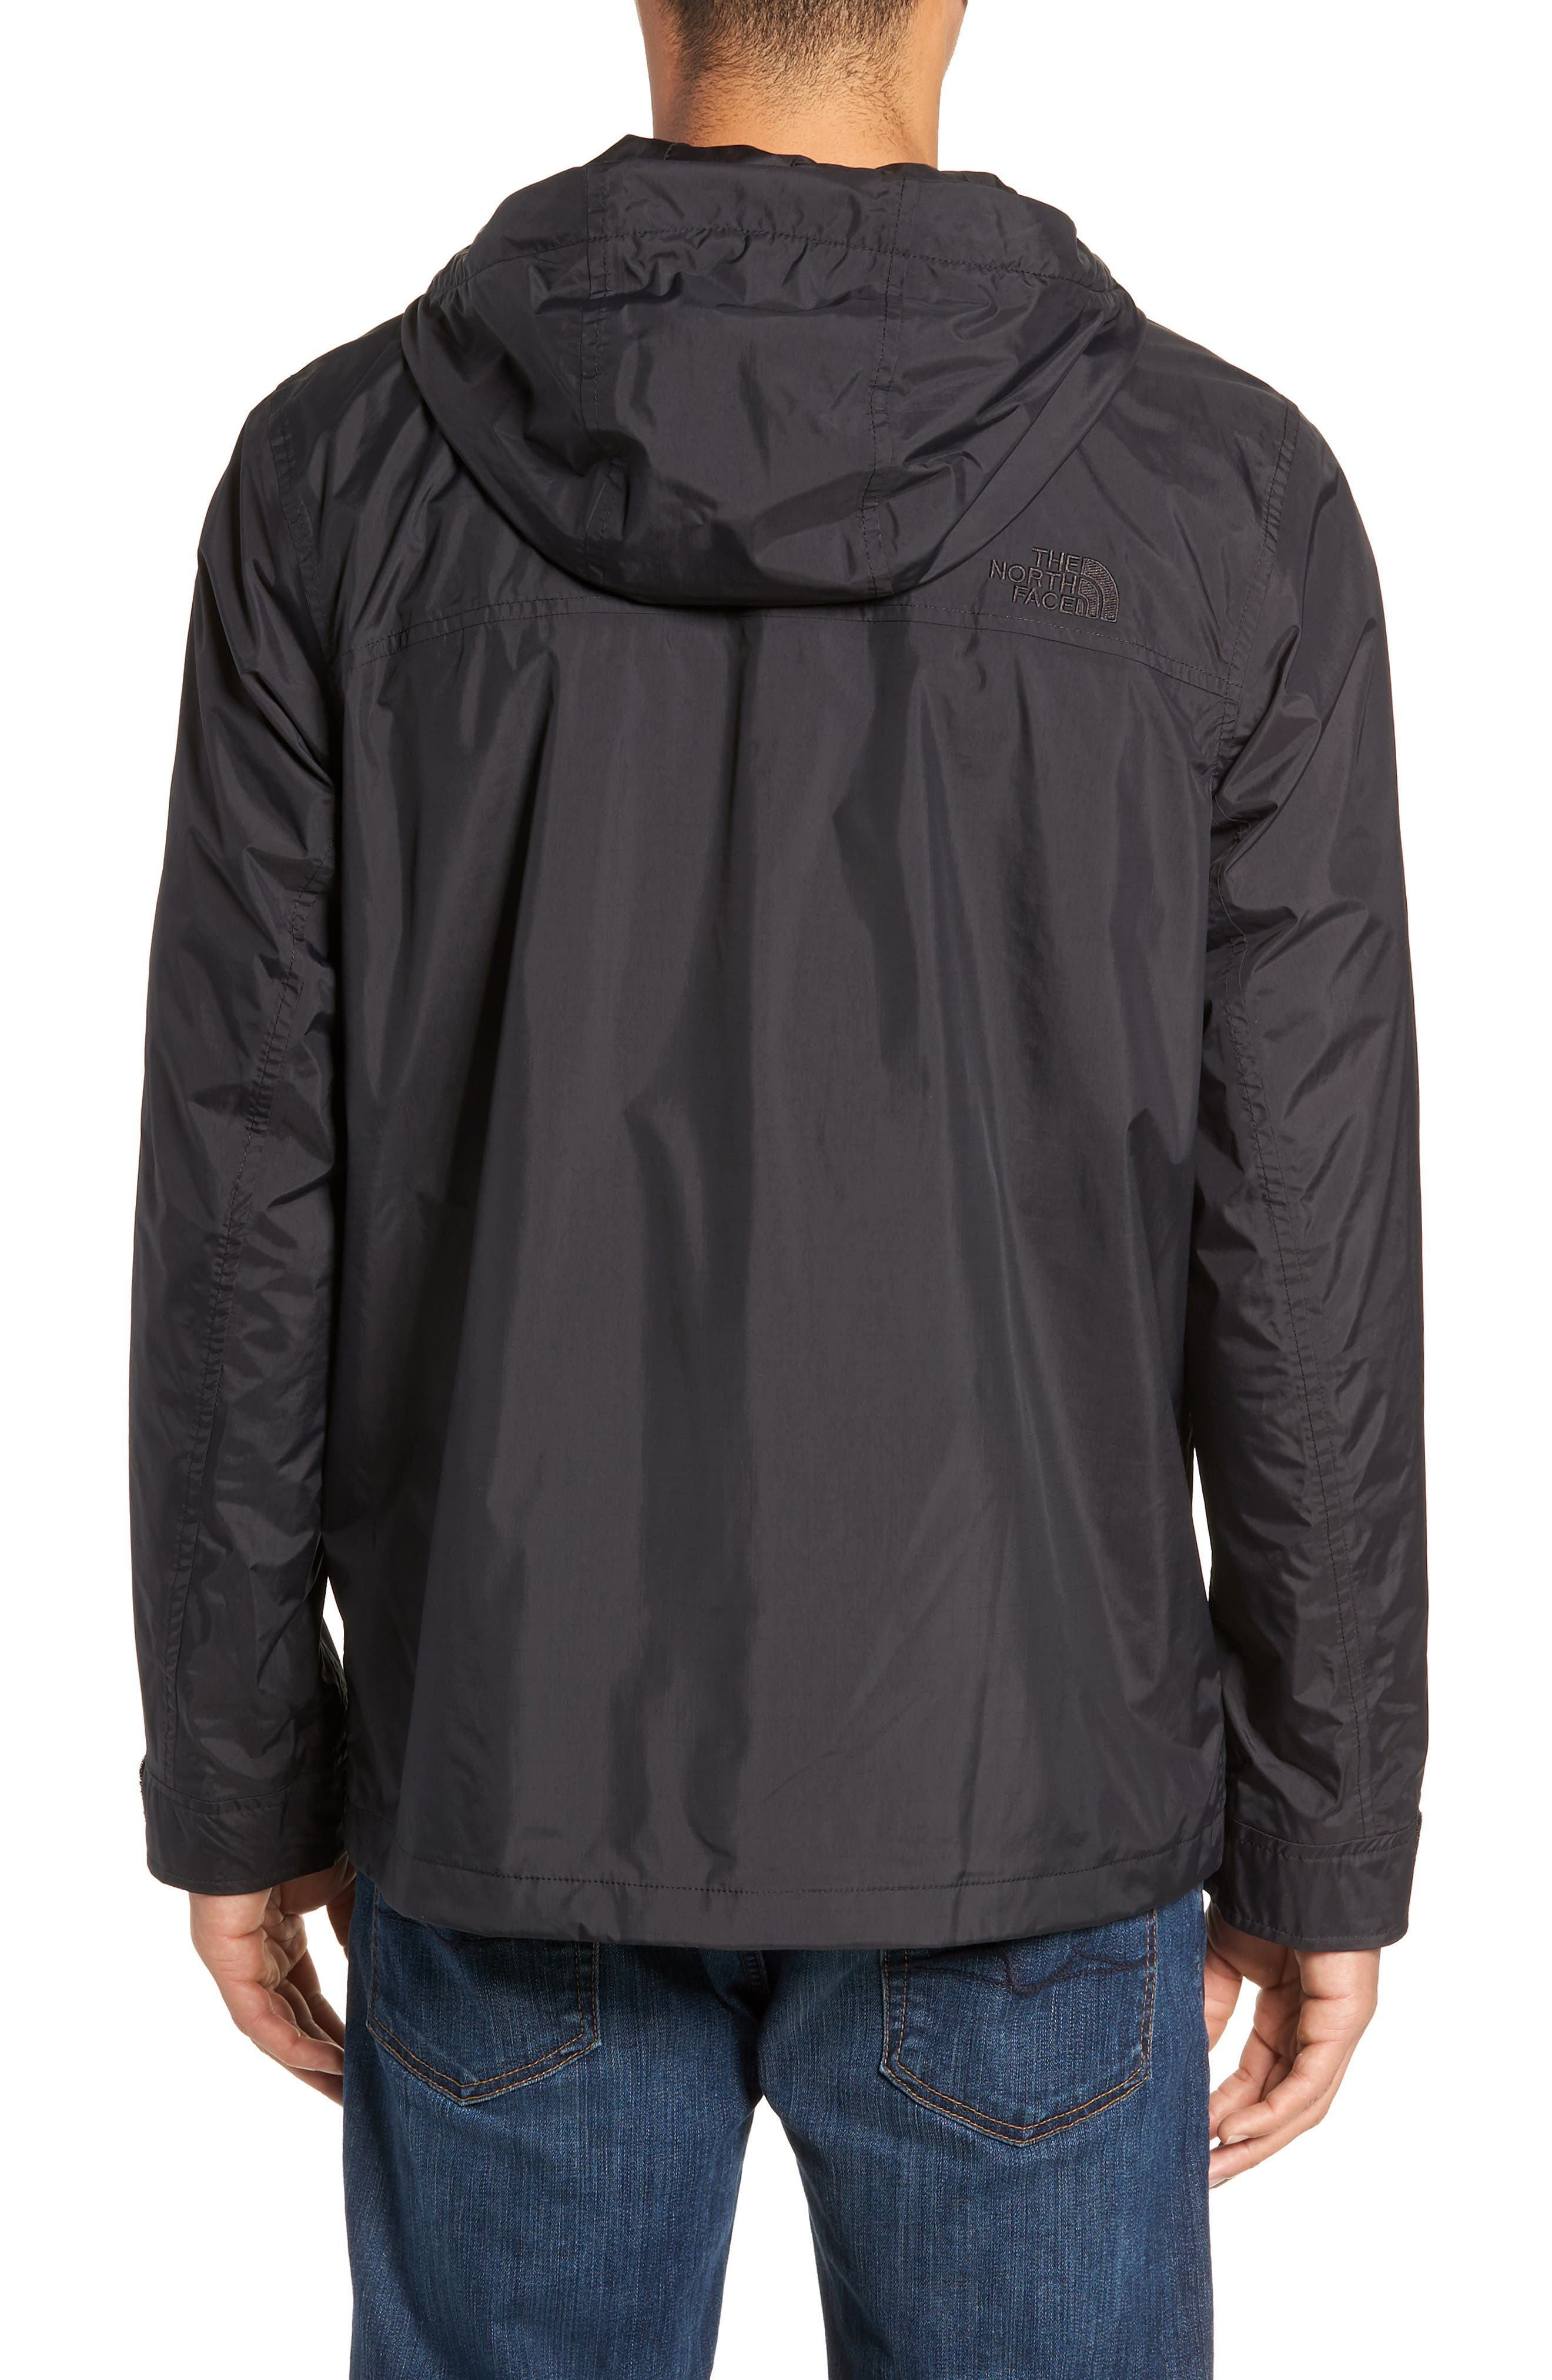 THE NORTH FACE, Zoomie Rain Jacket, Alternate thumbnail 2, color, 001